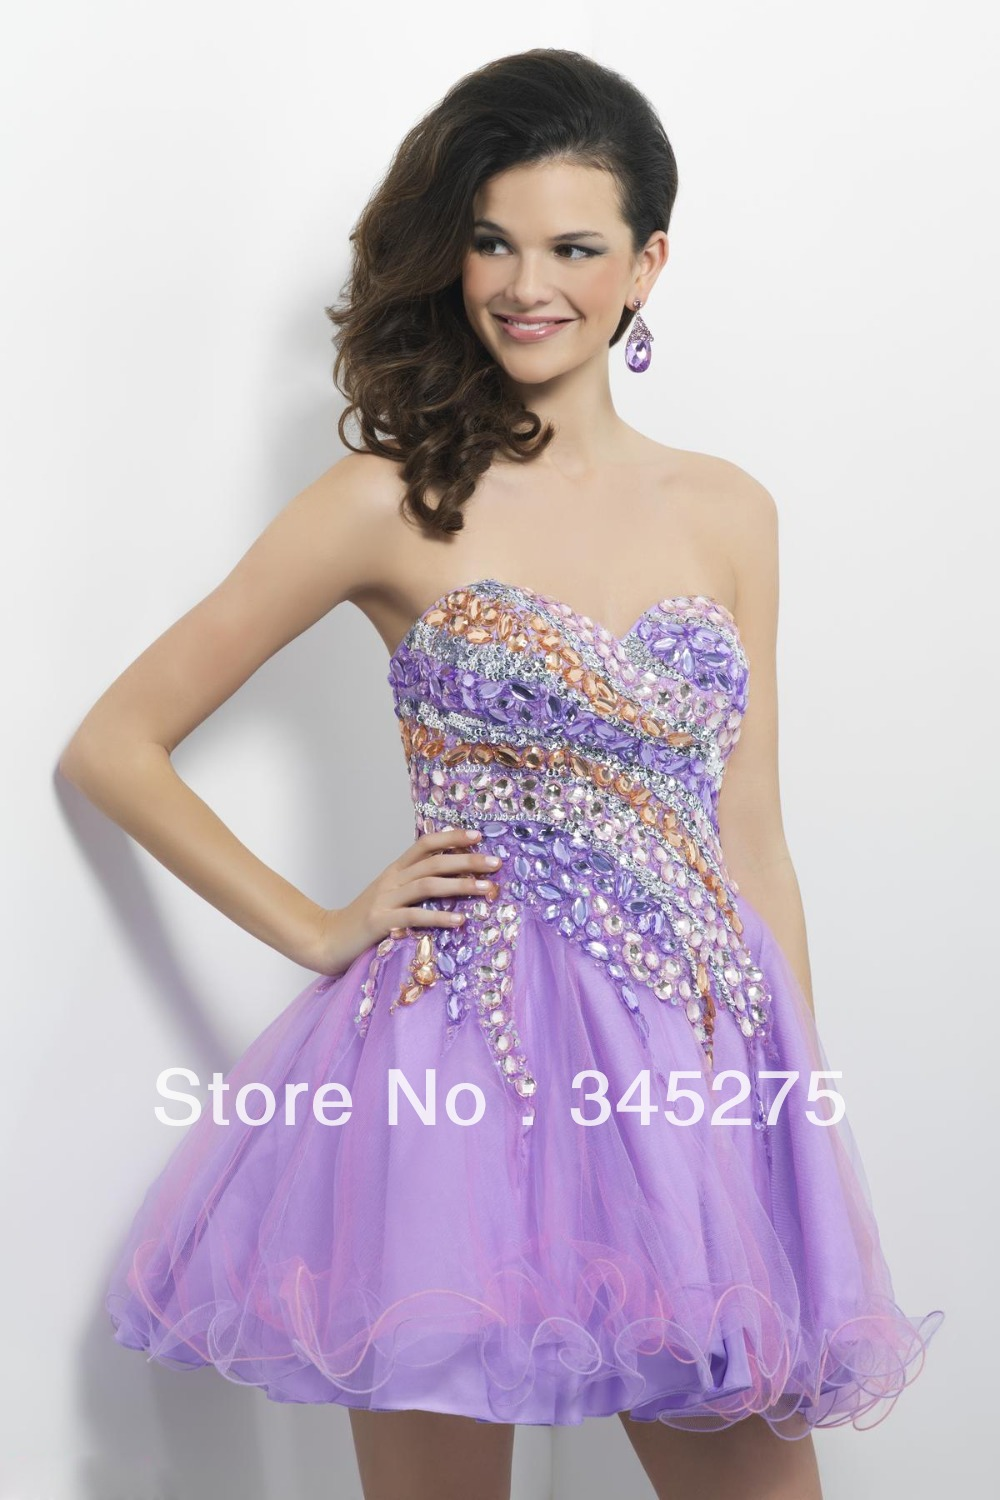 Cheap Prom Dresses for 8 Th Graders